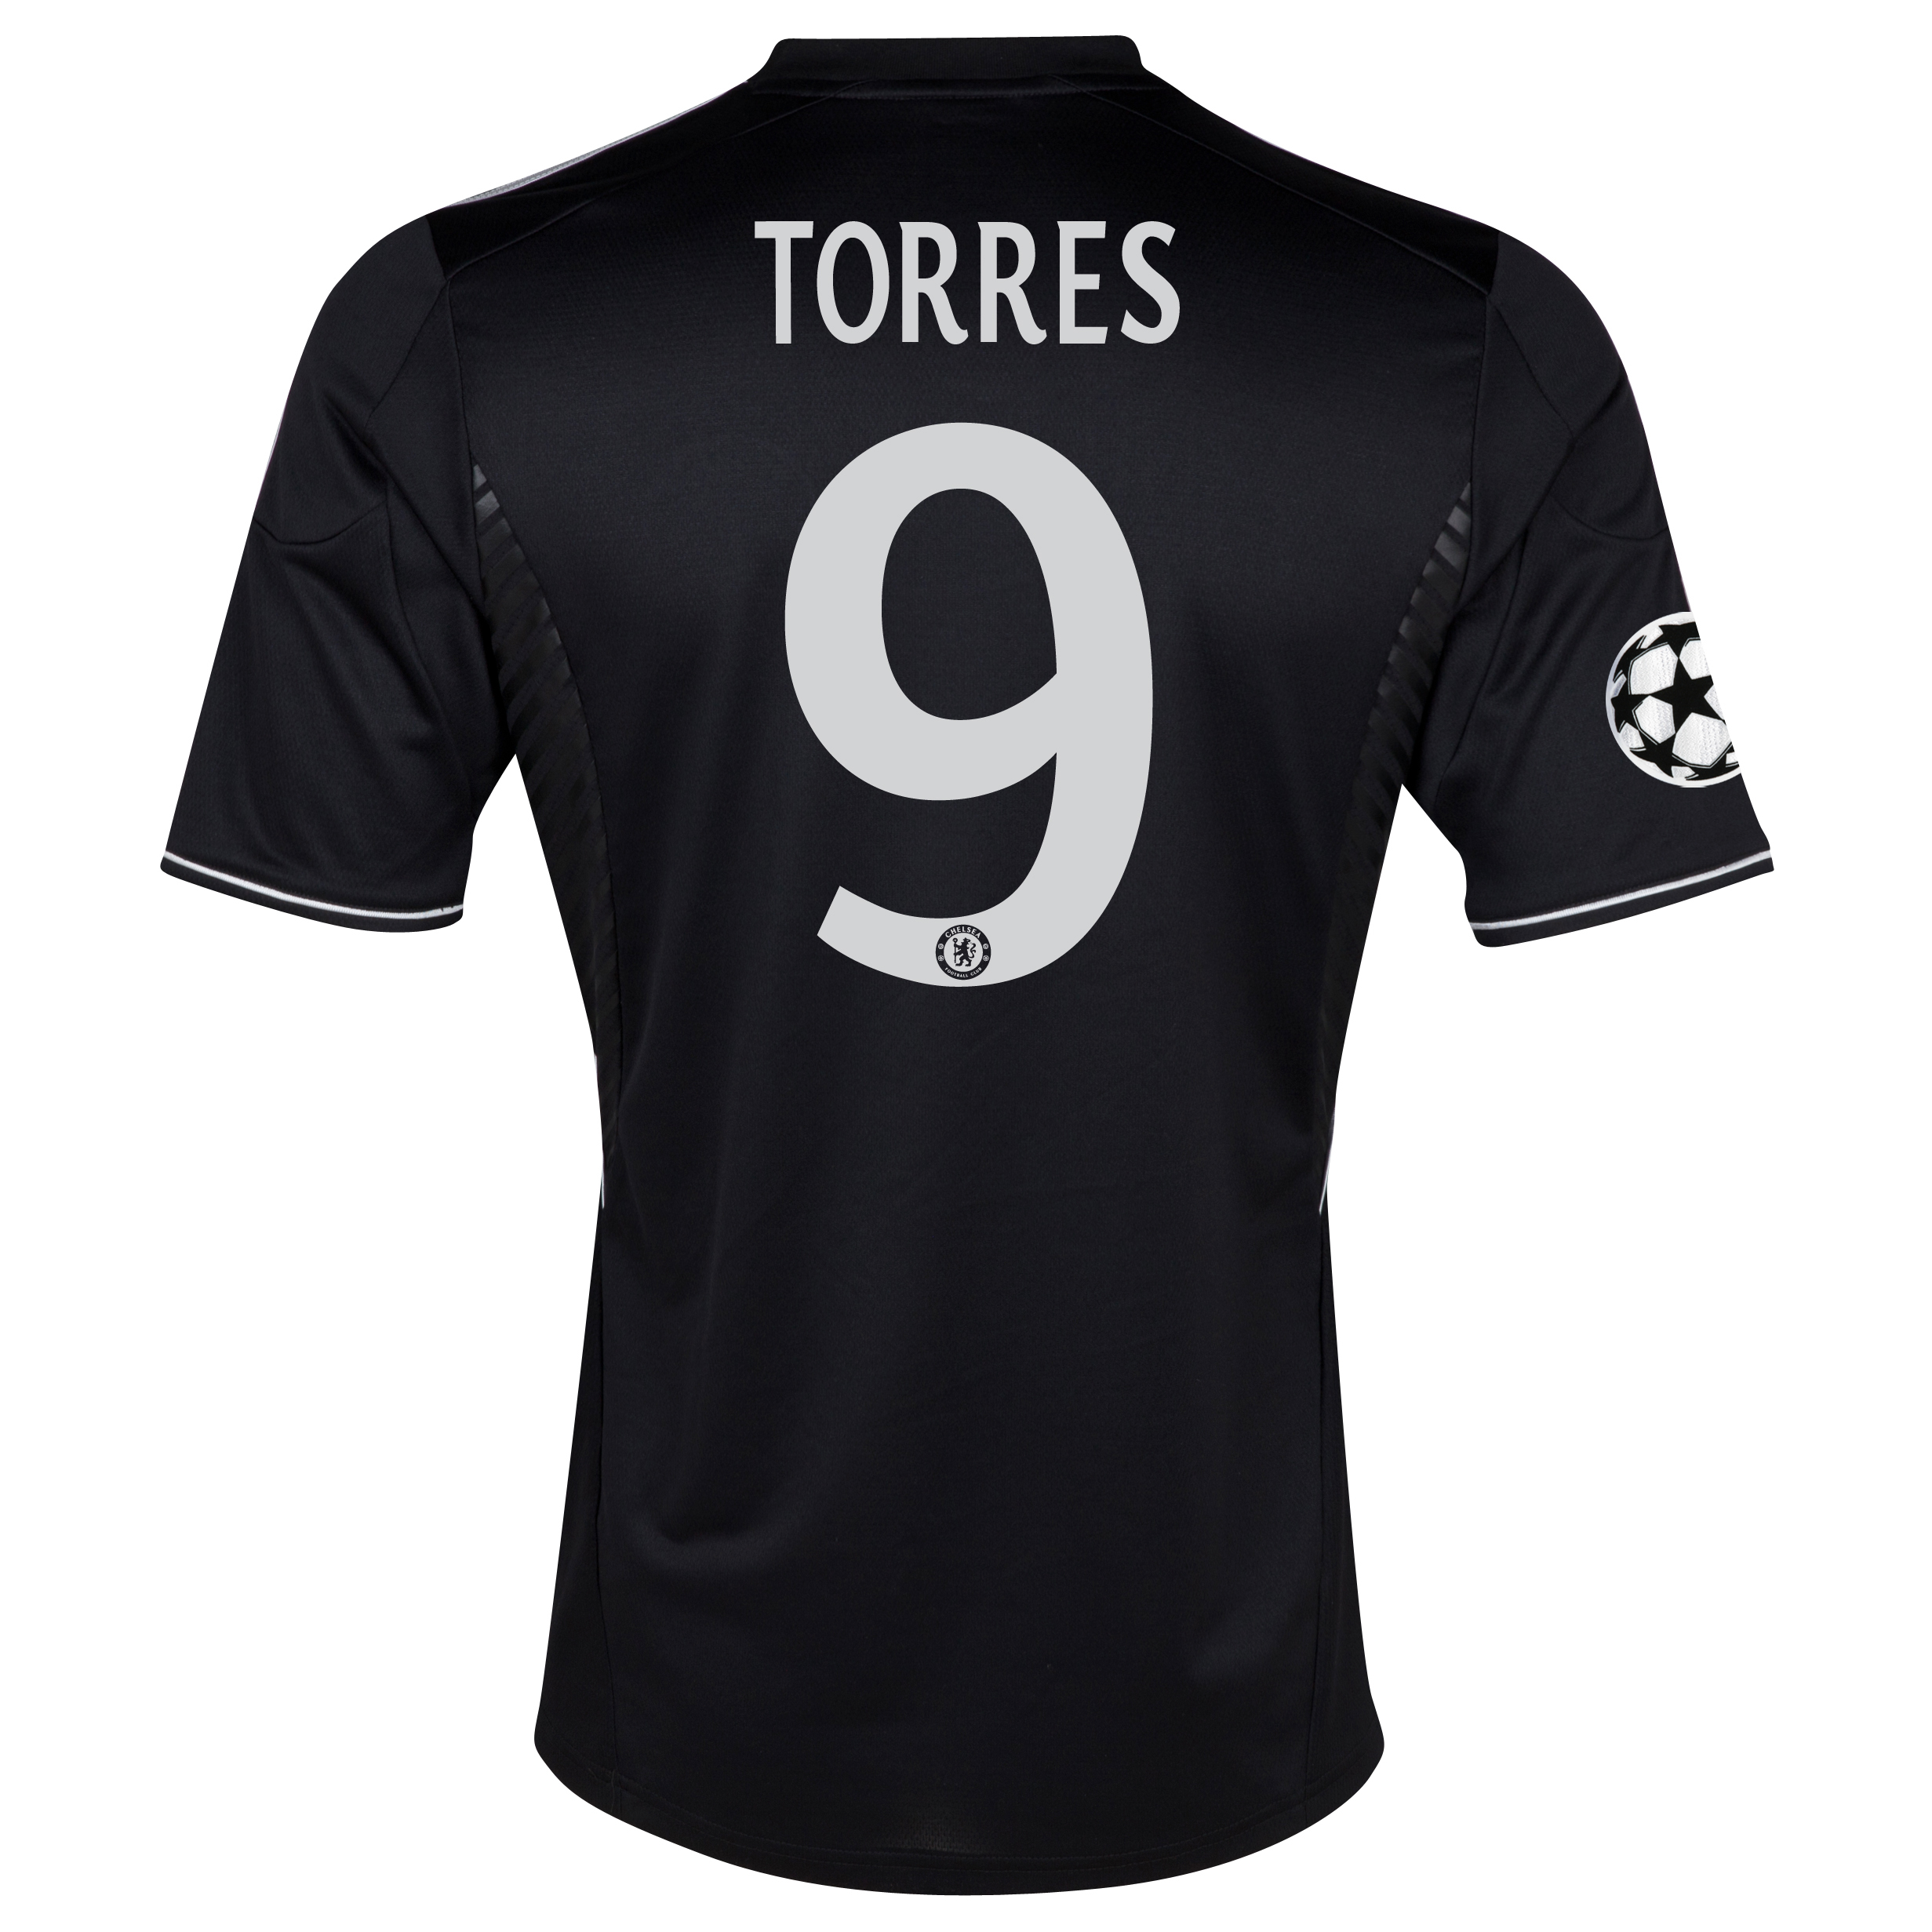 Chelsea UEFA Champions League Third Shirt 2013/14 with Torres 9 printing